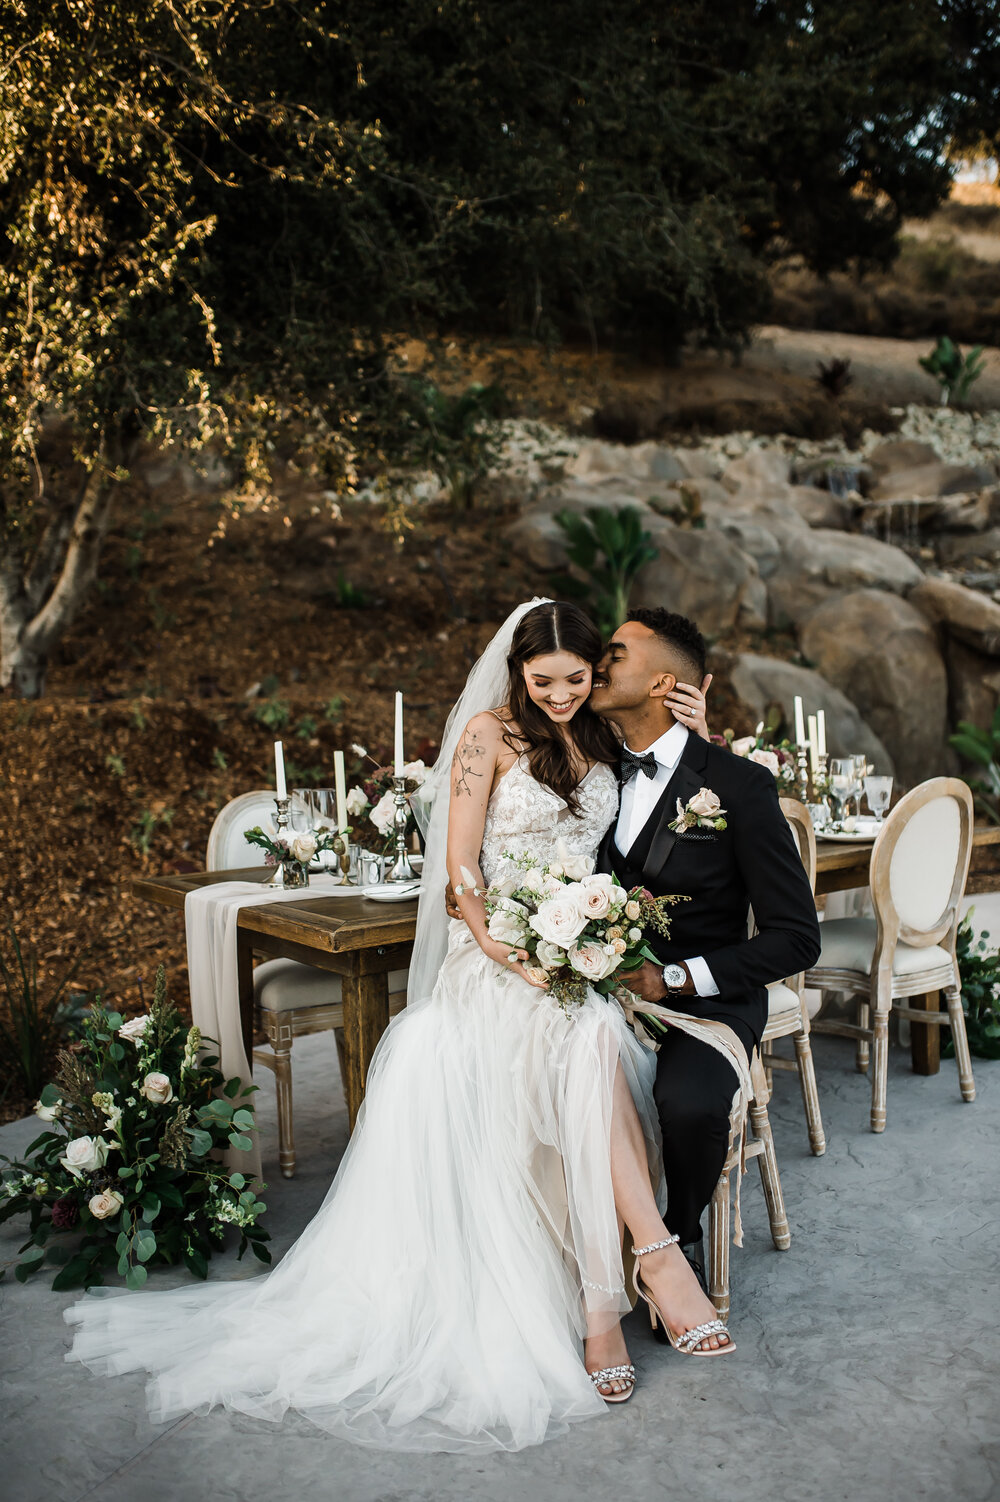 www.santabarbarawedding.com | The Tavern at Zaca Creek | Events by Fran | Michelle Ramirez Photography | Tangled Lotus | Friar Tux | Ever After Bridal | Badley Mischka | Bride and Groom at Table